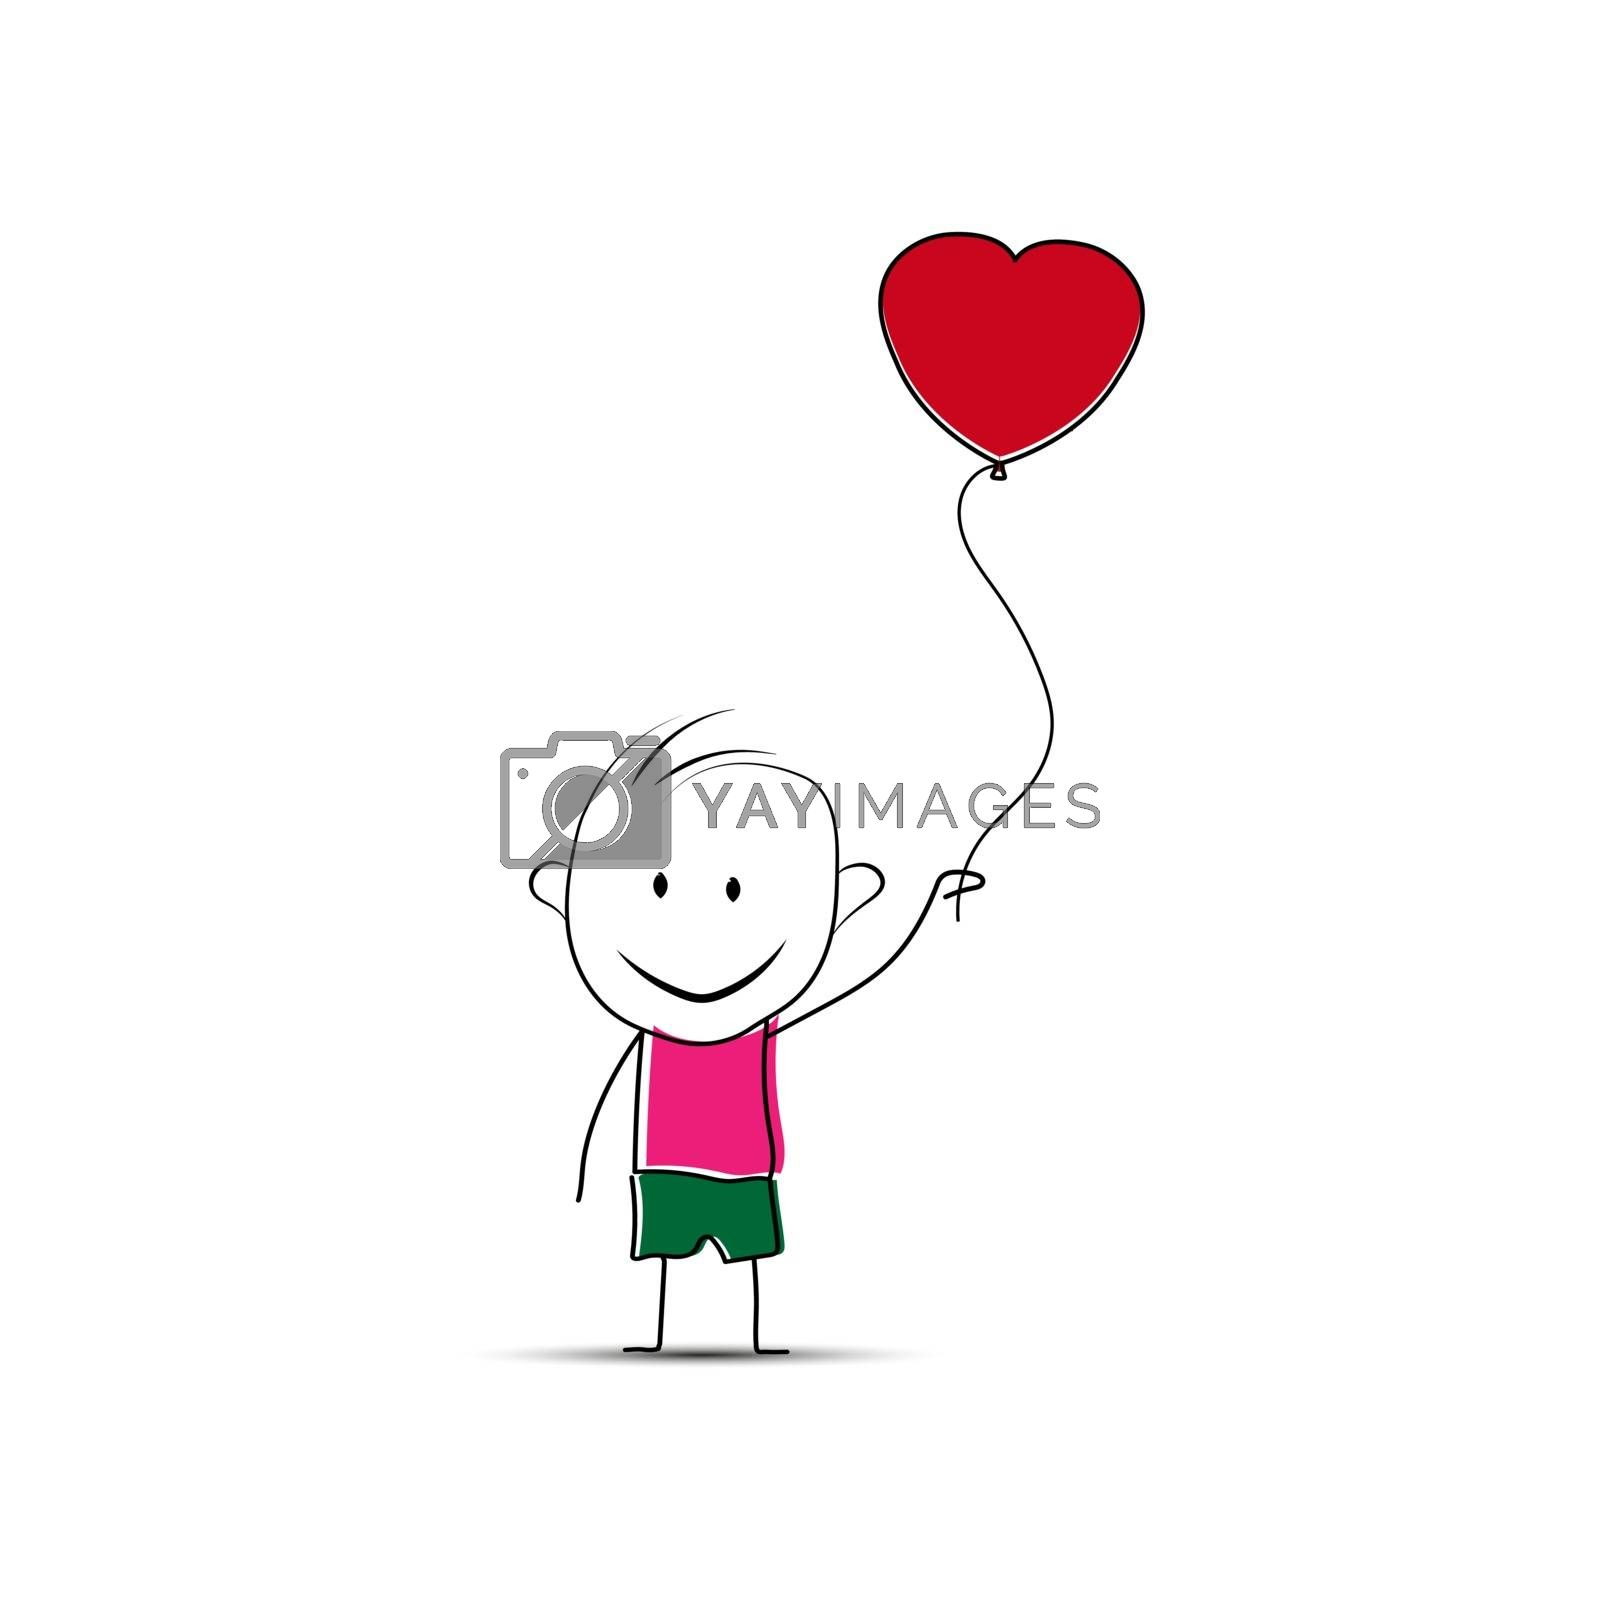 Cheerful man with a balloon in the form of a heart, simple design